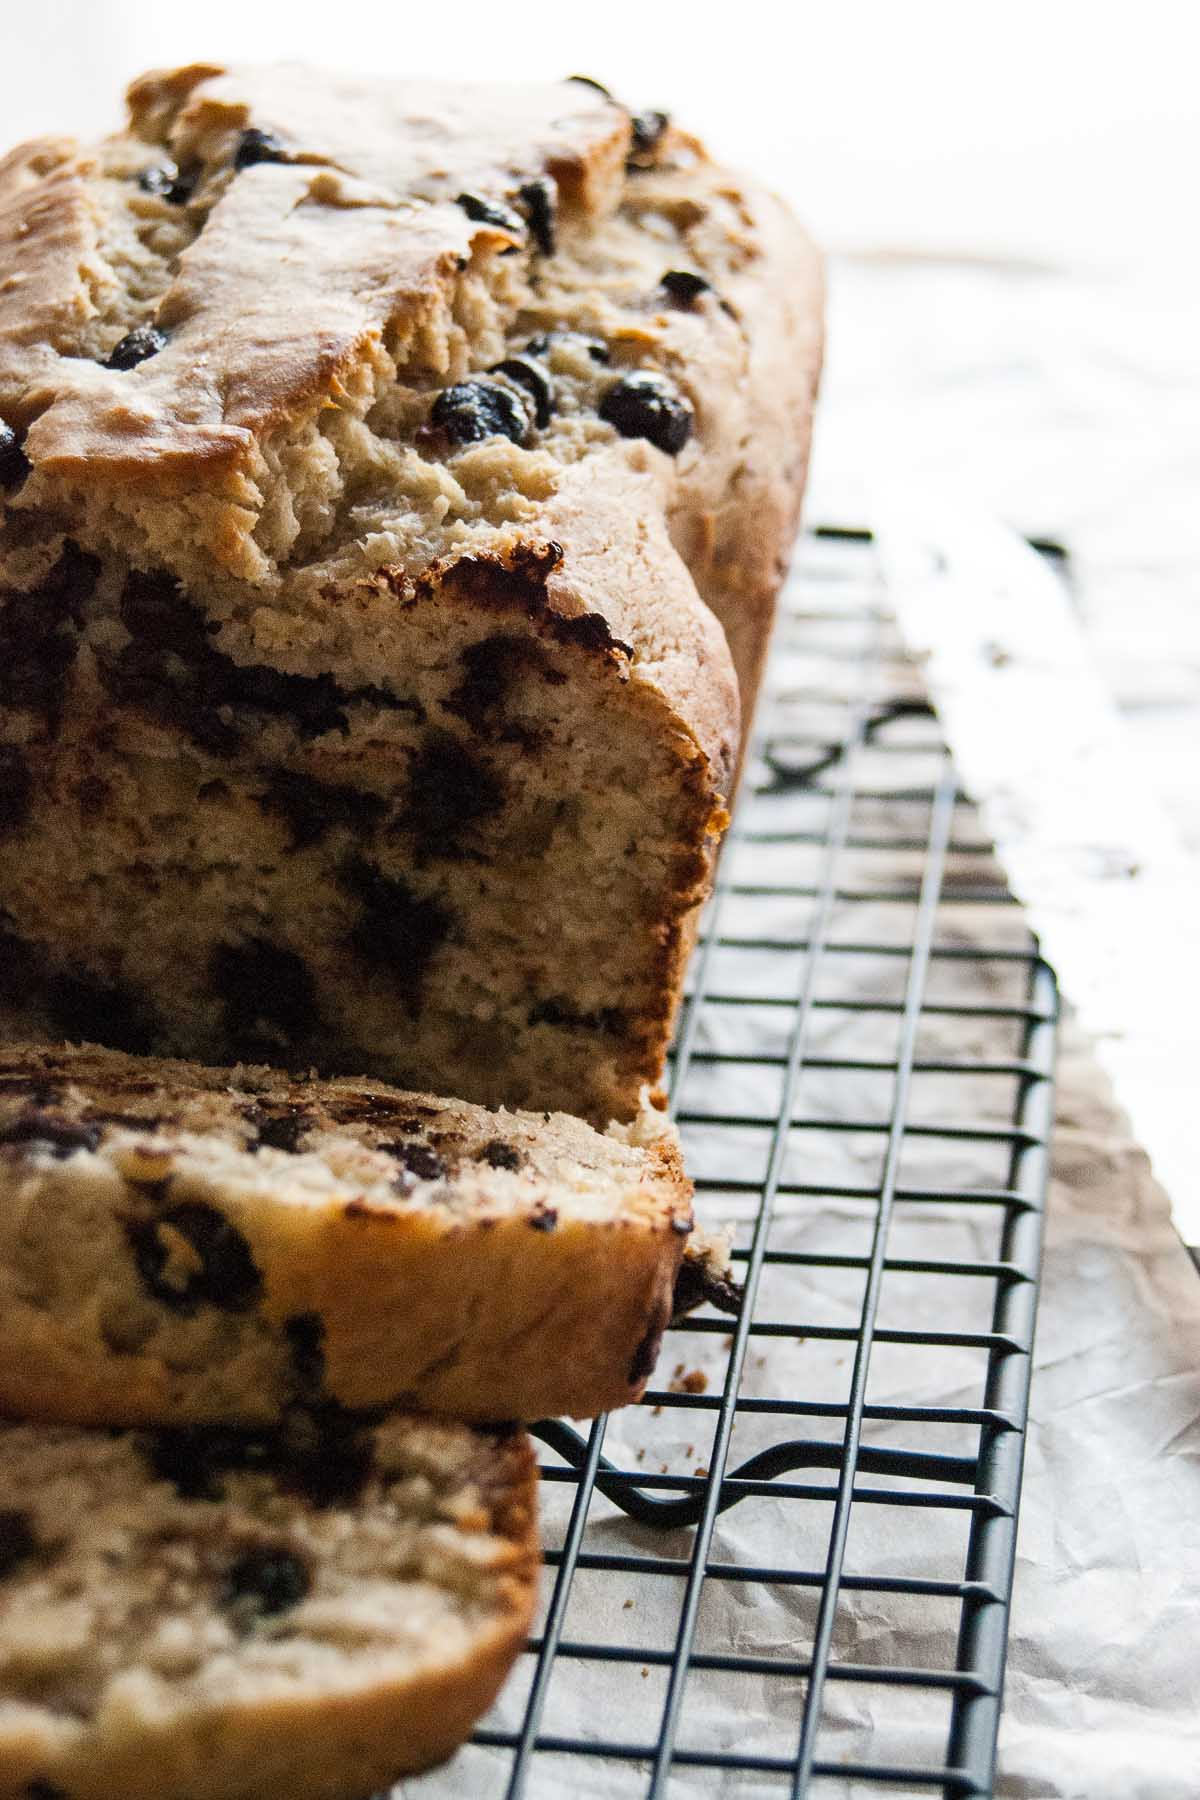 Chocolatey goodness, creamy buttermilk and ripe bananas are what make this Chocolate Chip Buttermilk Banana Bread recipe the envy of the sweet snack world! - thebeaderchef.com